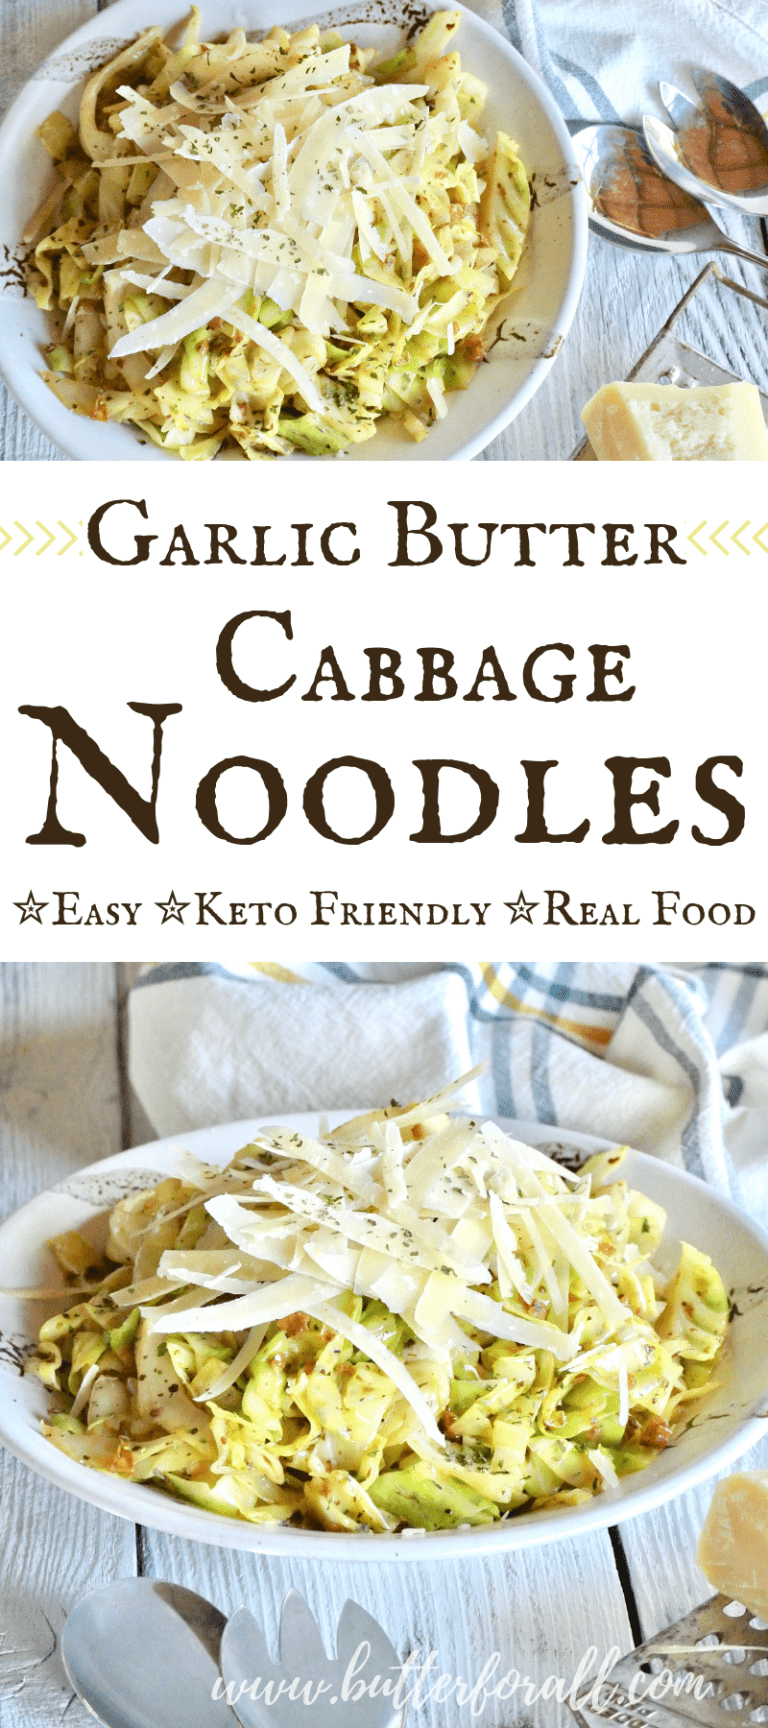 These keto friendly cabbage noodles are such an easy dish to prepare. They are fast and full of garlic, herb and butter flavor. You will love adding these noodles into your real food recipe rotation!